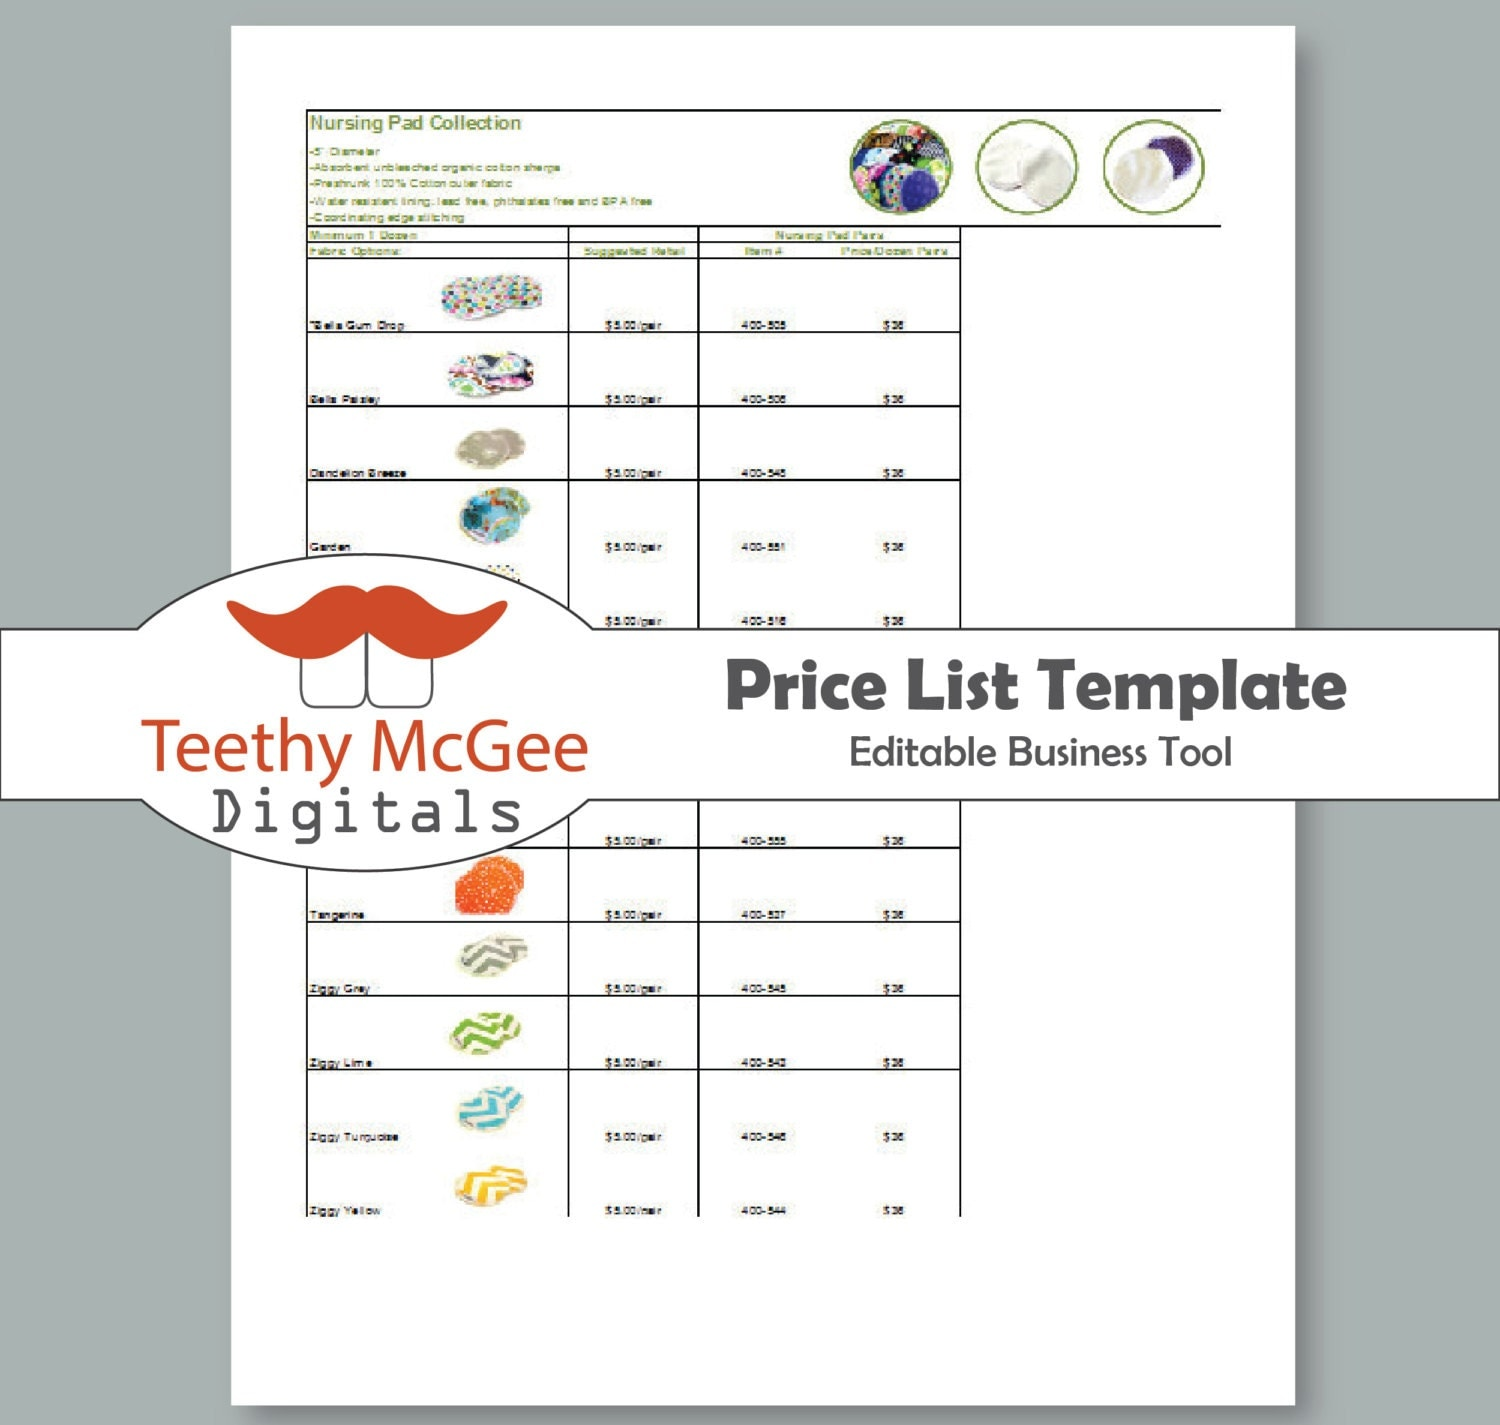 Price list template instant download by teethymcgeedigitals for Etsy shop policies template